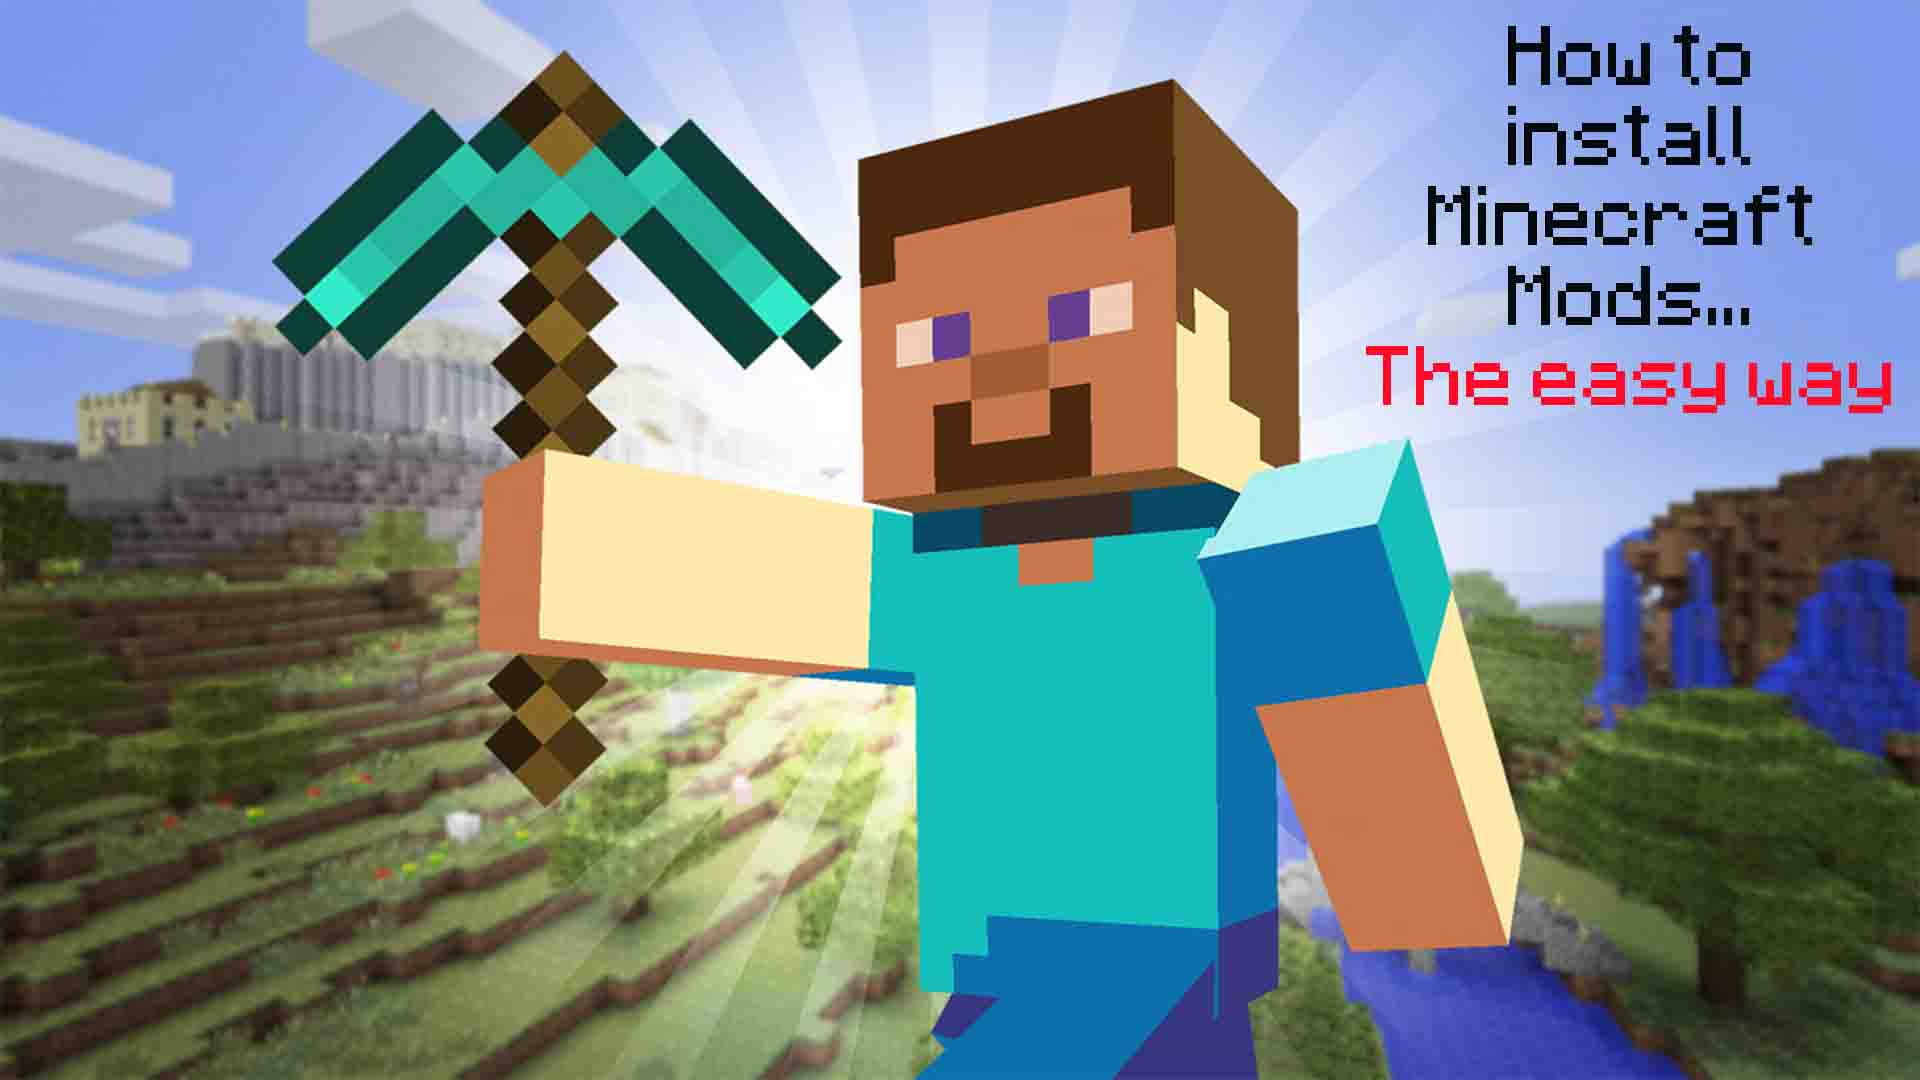 How to install Minecraft mods the easy way